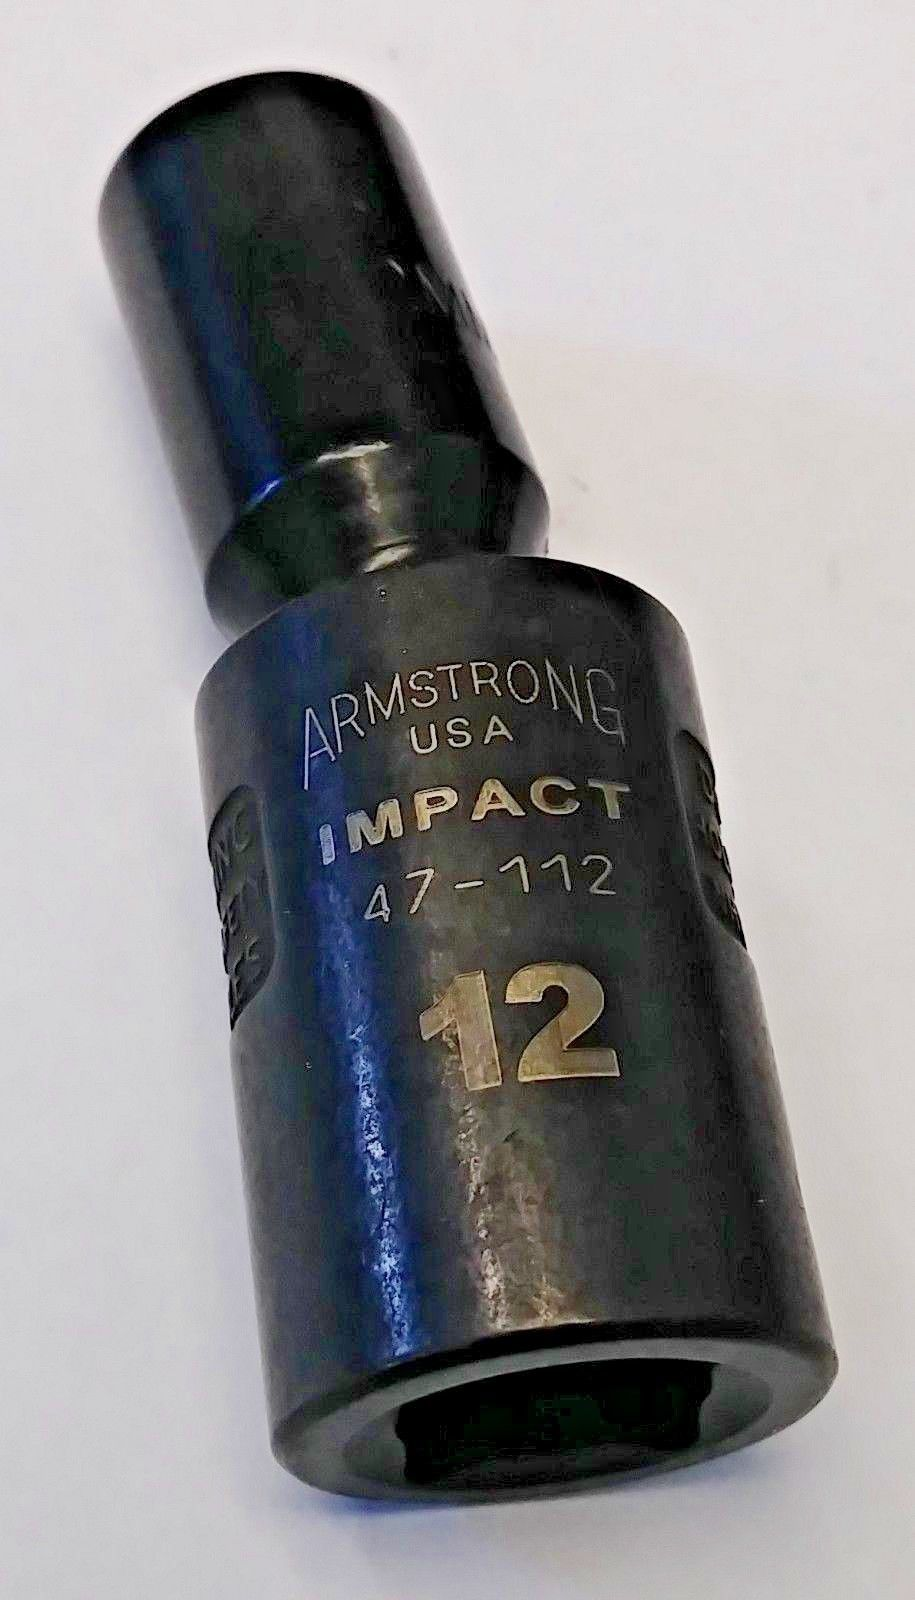 Armstrong 47-112 1/2